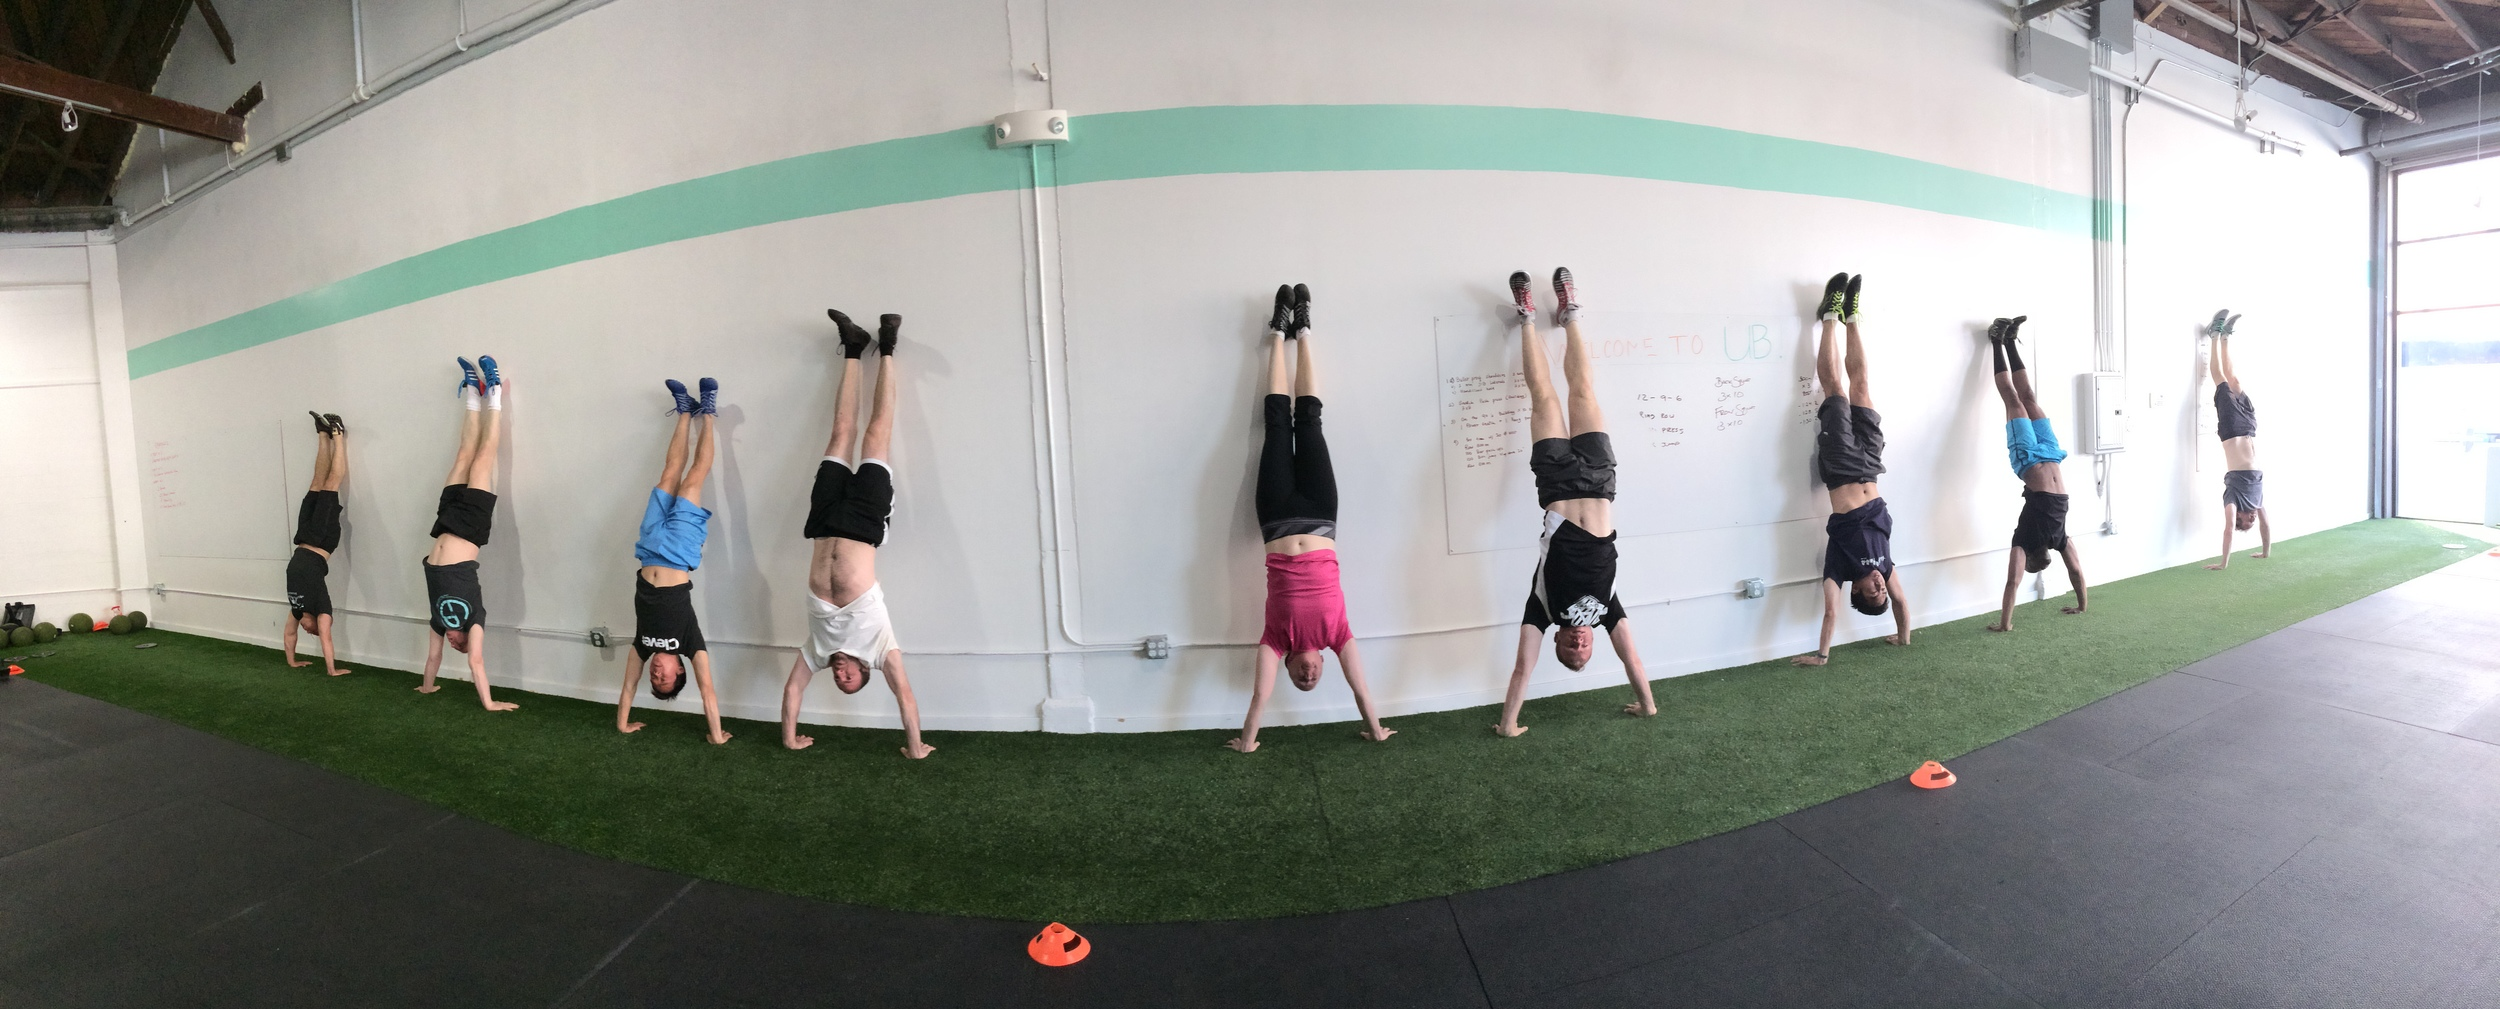 The 8am class works their shoulder stability with handstand holds